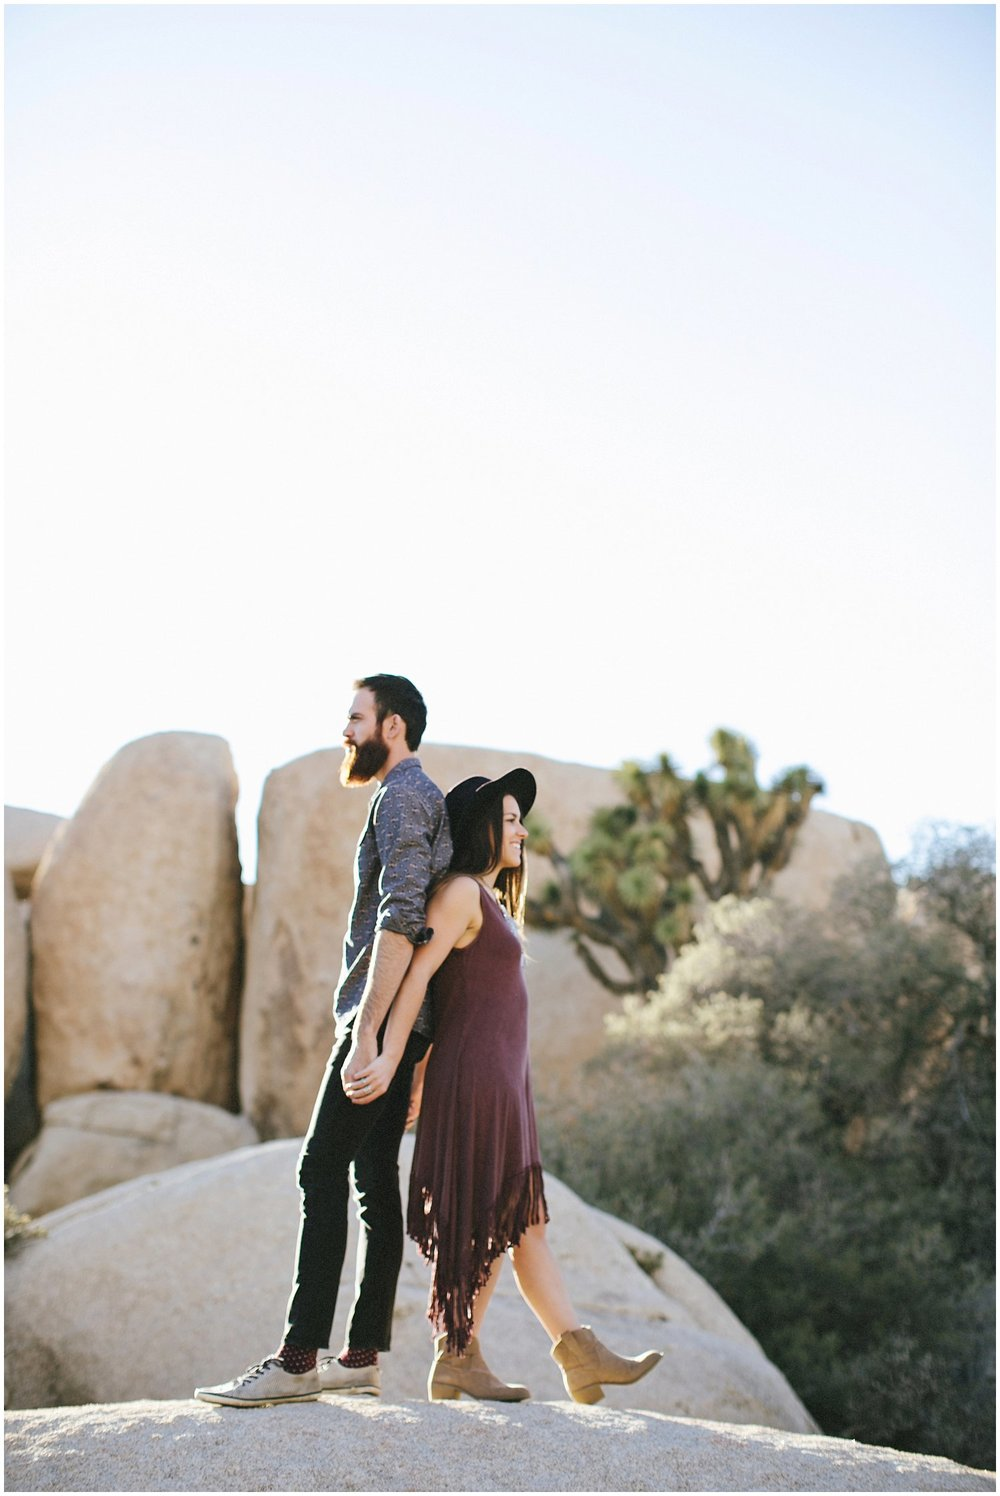 joshuatree_weddingphotographer_destinationweddingphotographer_emilychidesterphotography_0018.jpg